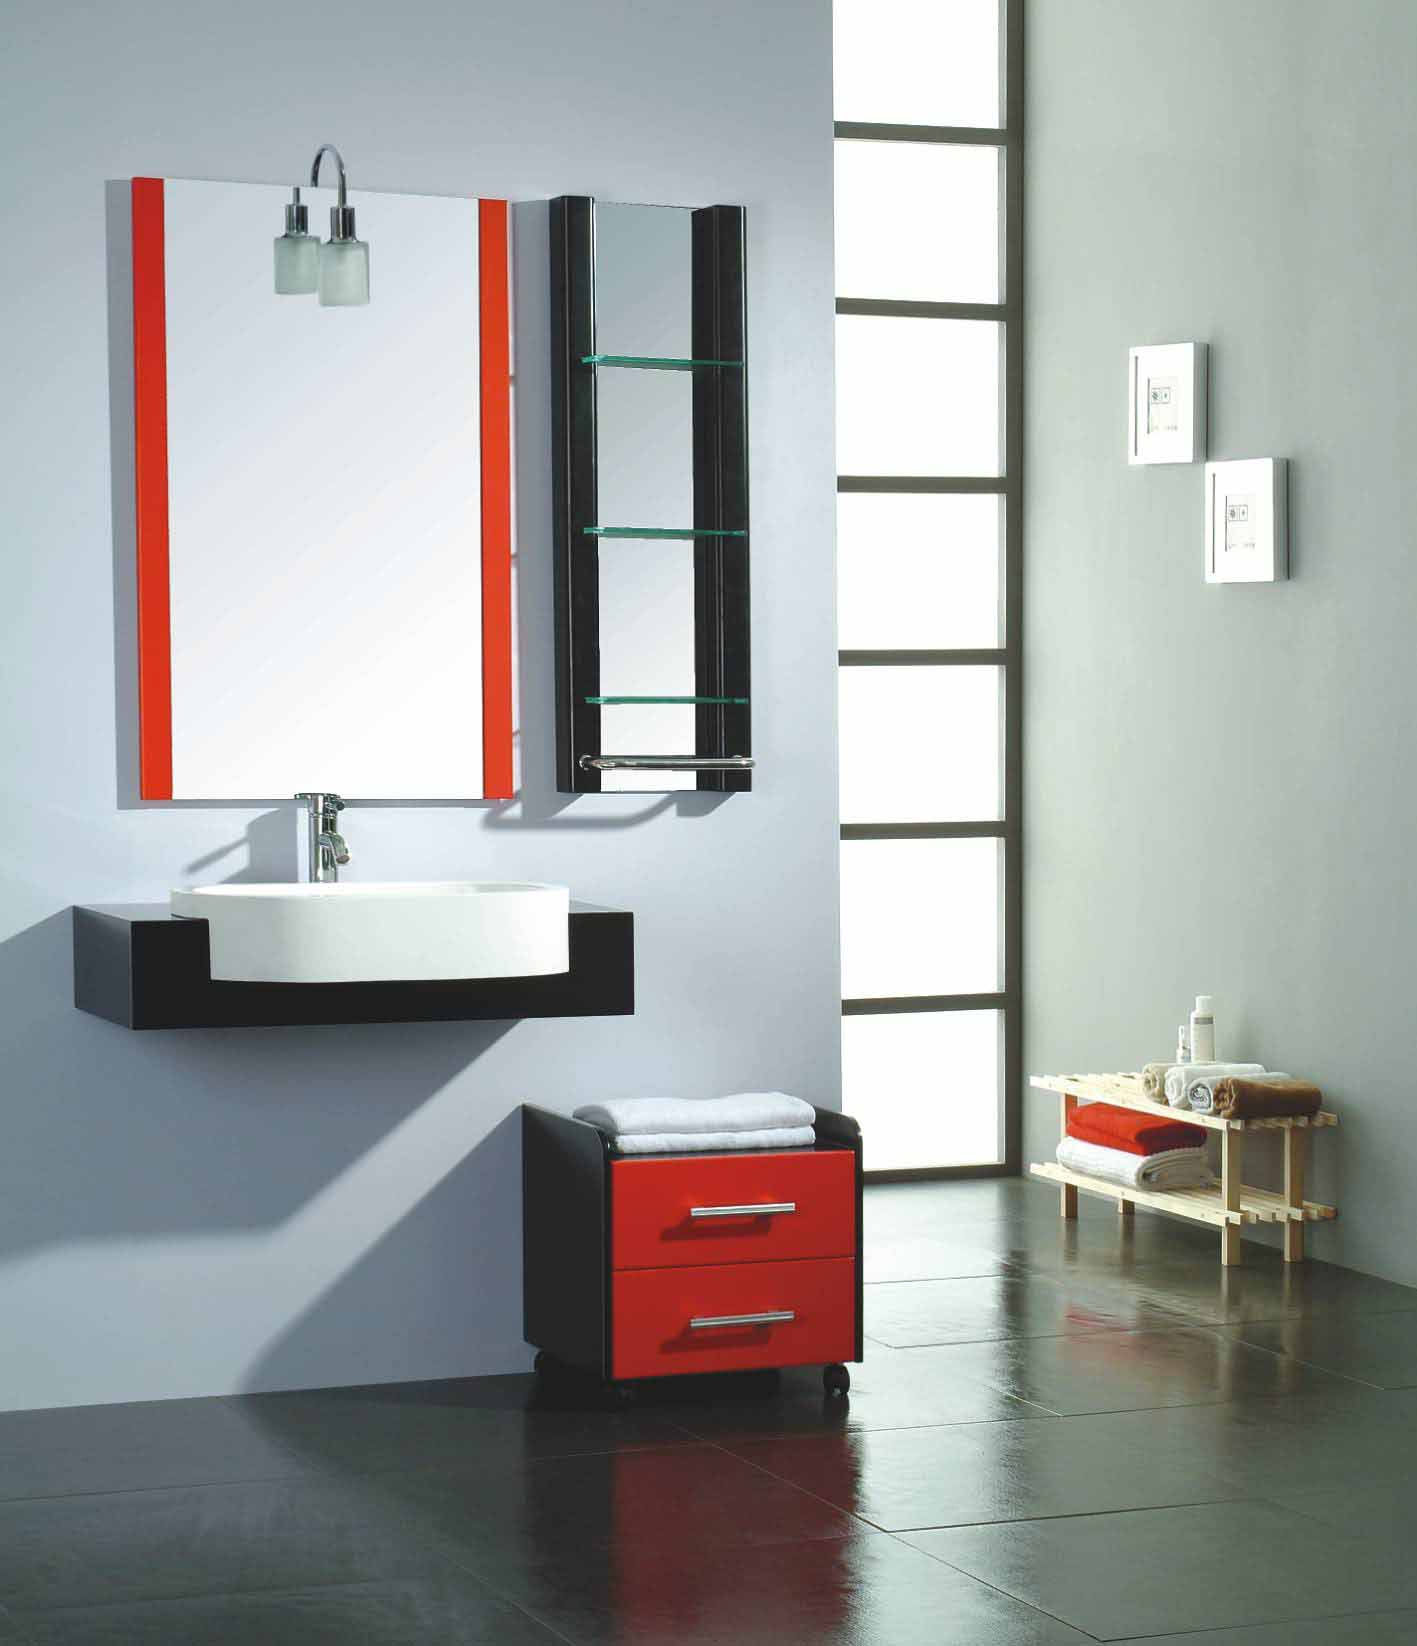 Modern vanity light ideas for wall mounted sink design on a cool little movable bathroom cabinet idea